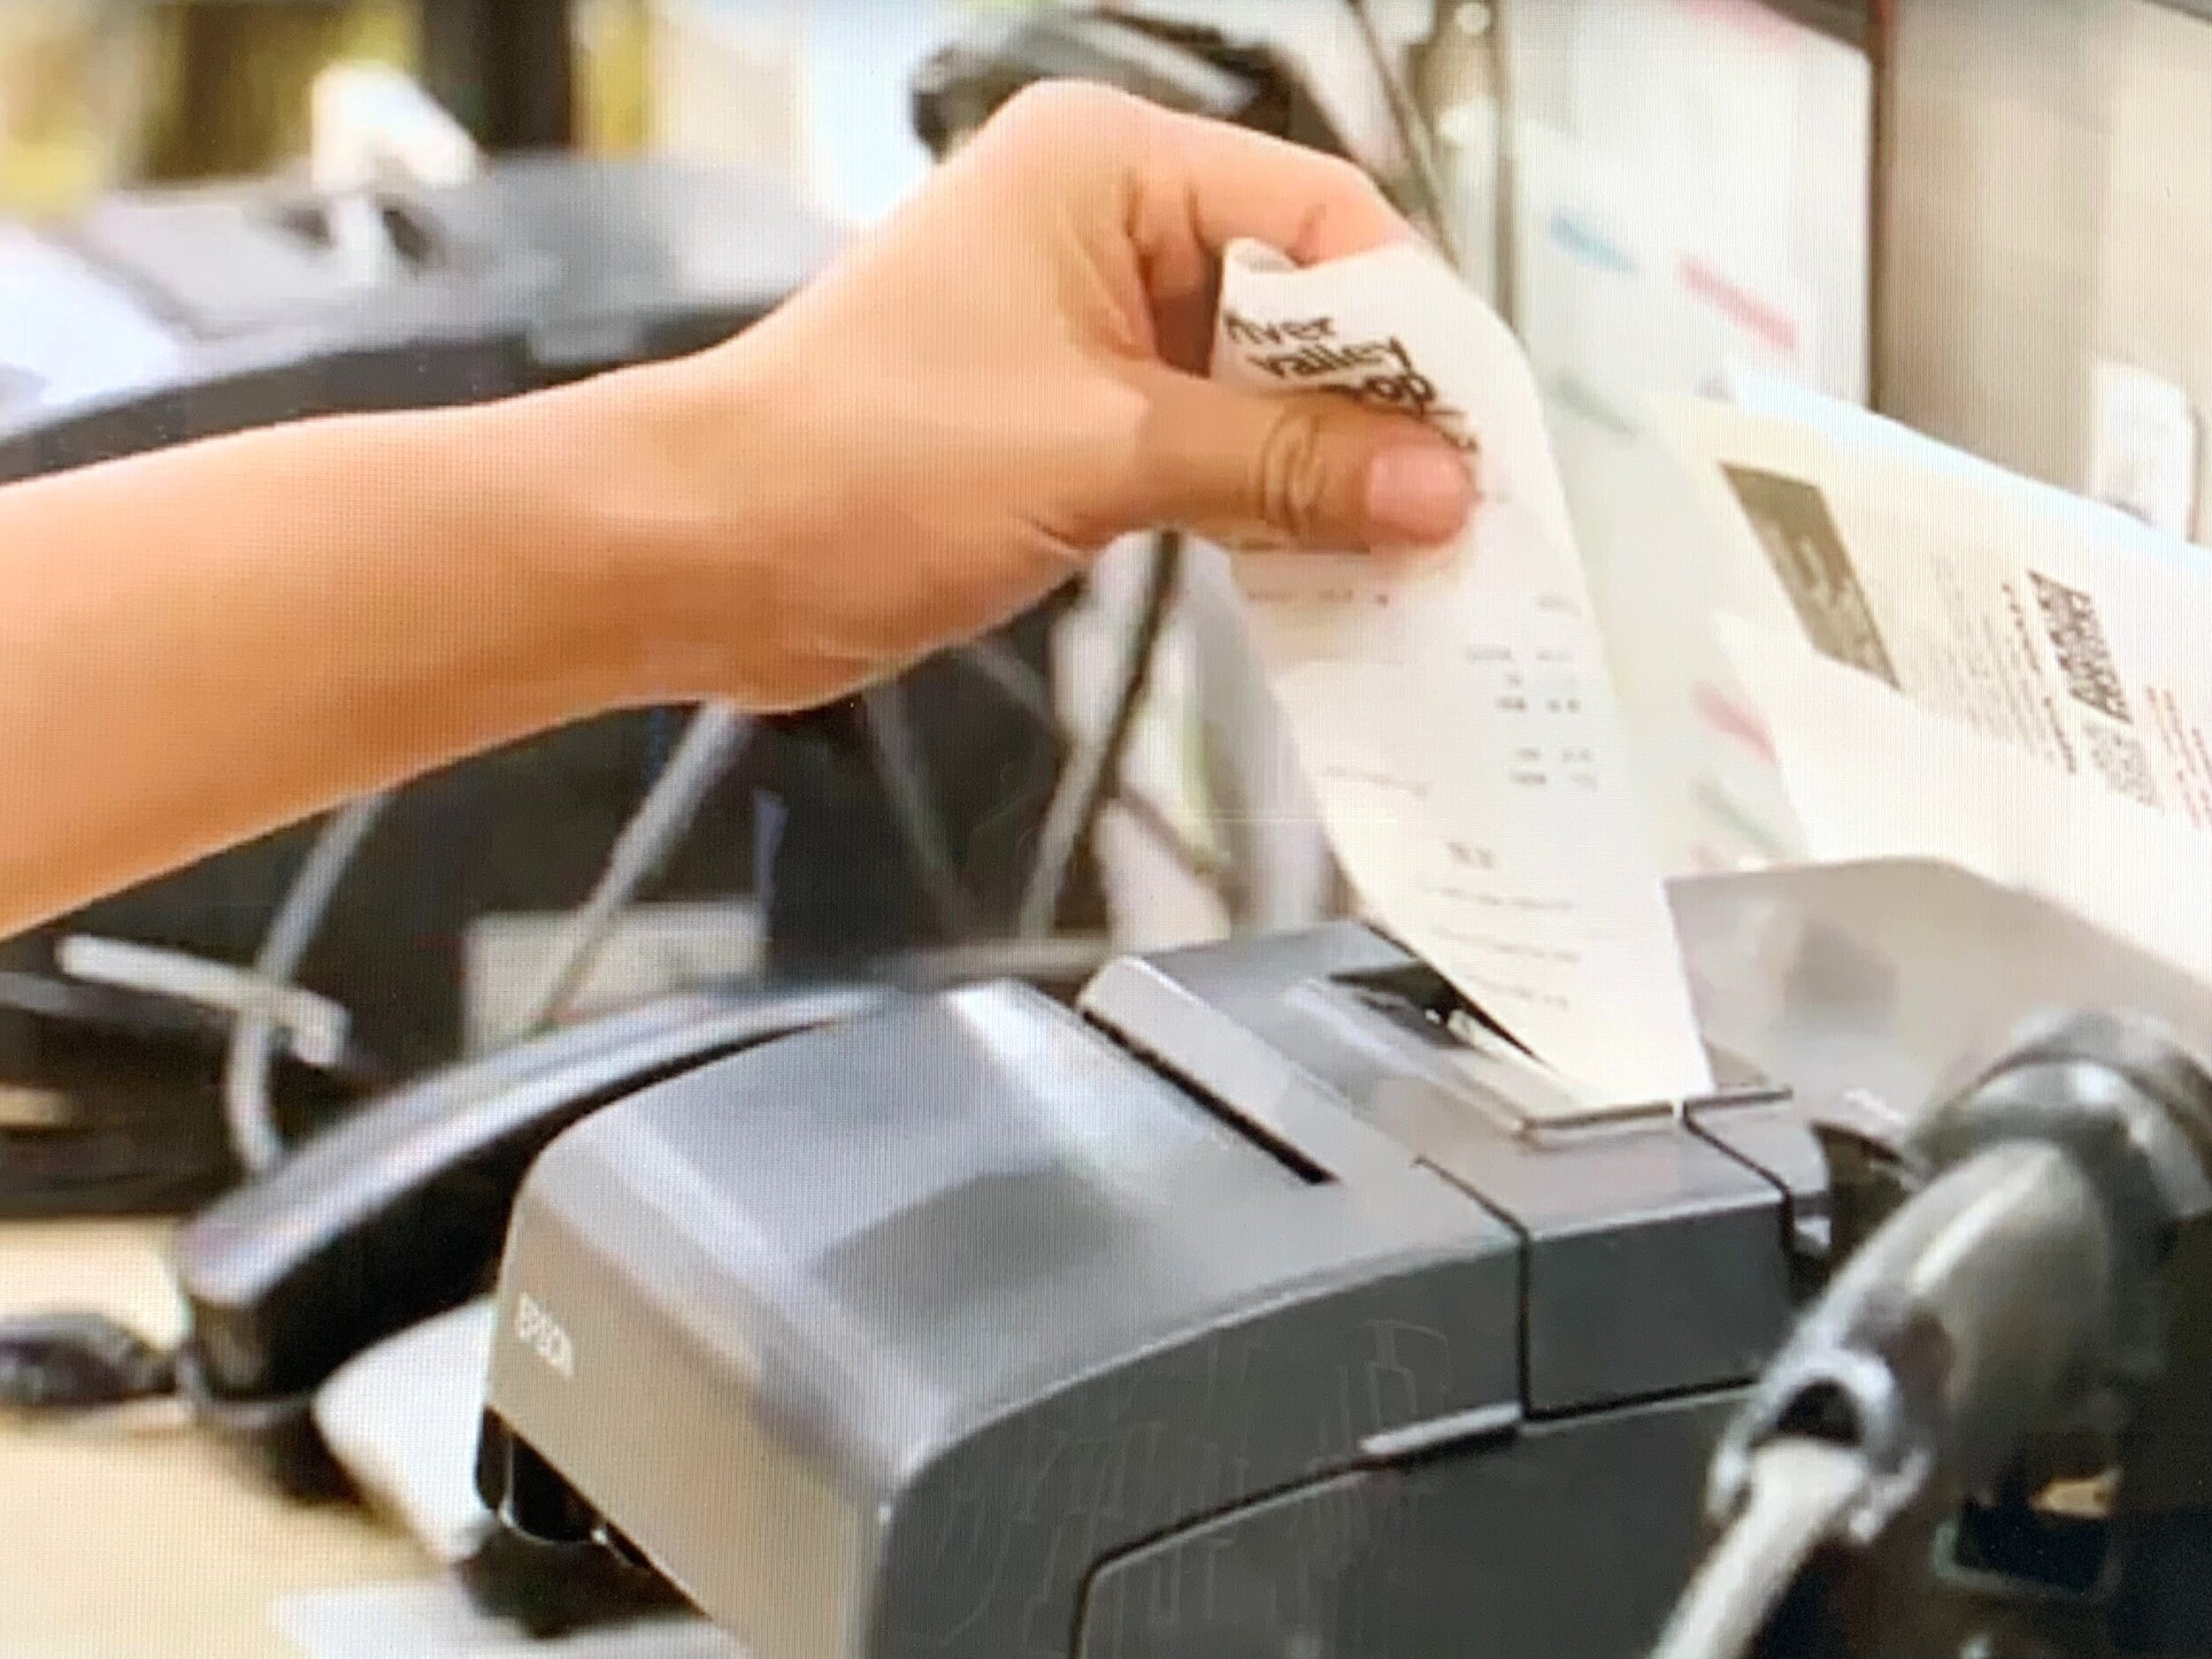 Receipts aren't the only products printed on thermal paper with bisphenols. Many movie tickets, bus and airline tickets, parking tickets, mailing labels, prescription bottle labels, deli labels, blood draw labels, and more are printed on thermal paper!